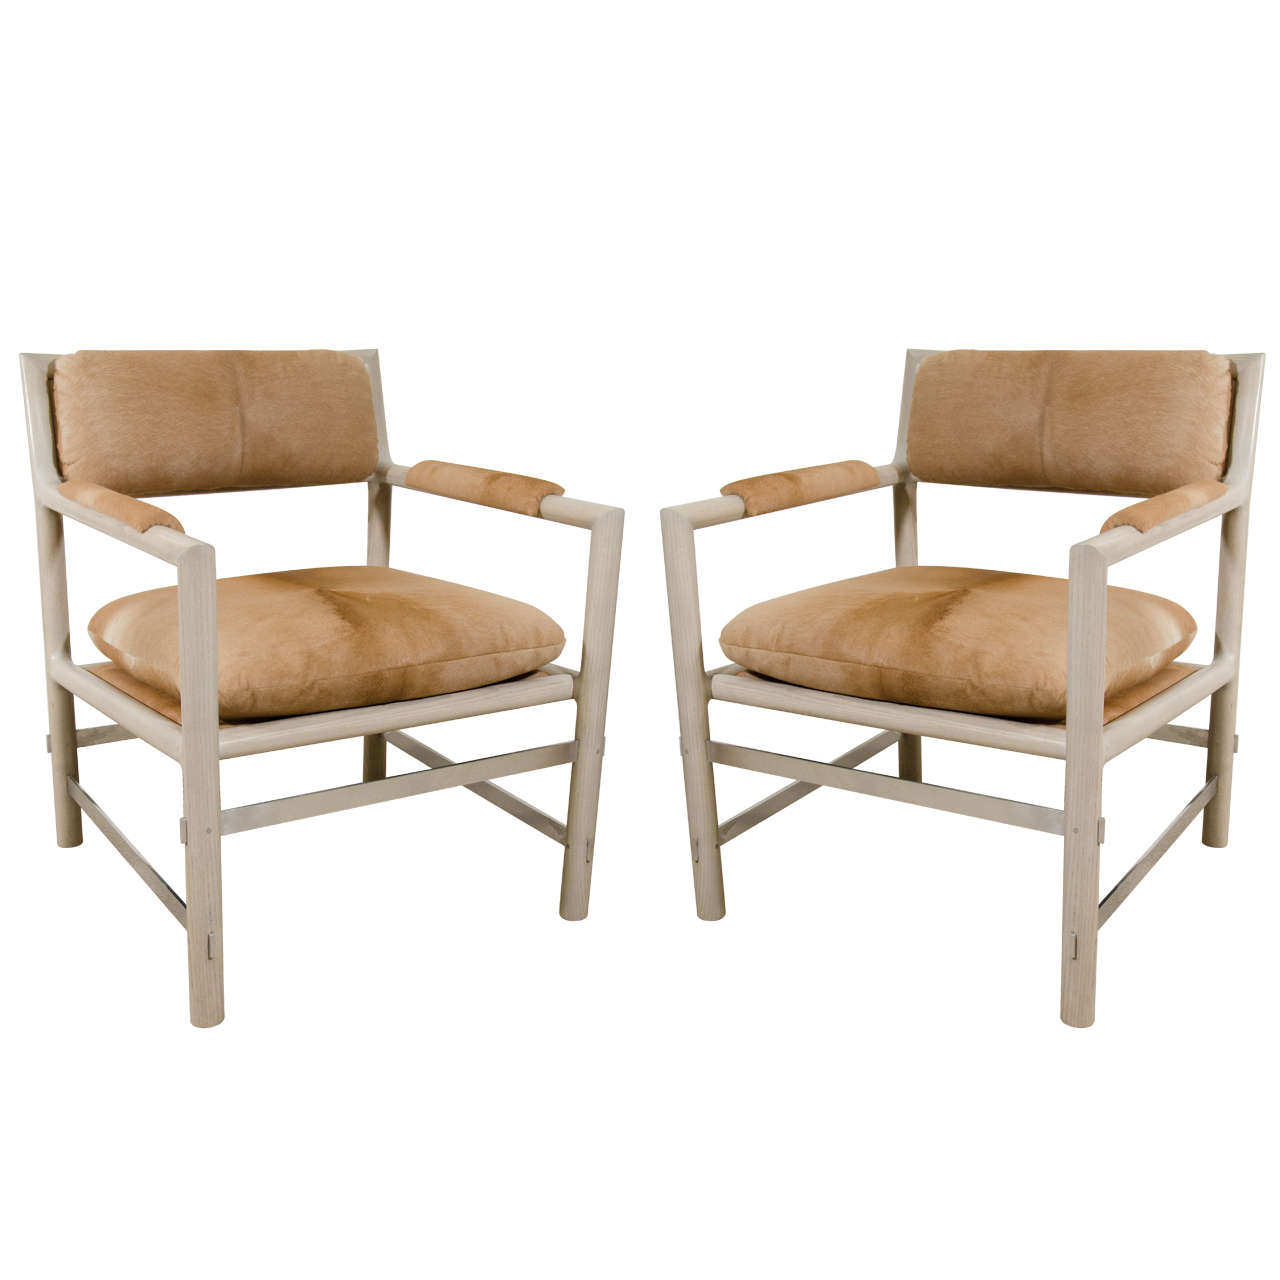 Pair of Edward Wormley for Dunbar Chairs in Cowhide, circa 1960, USA 1